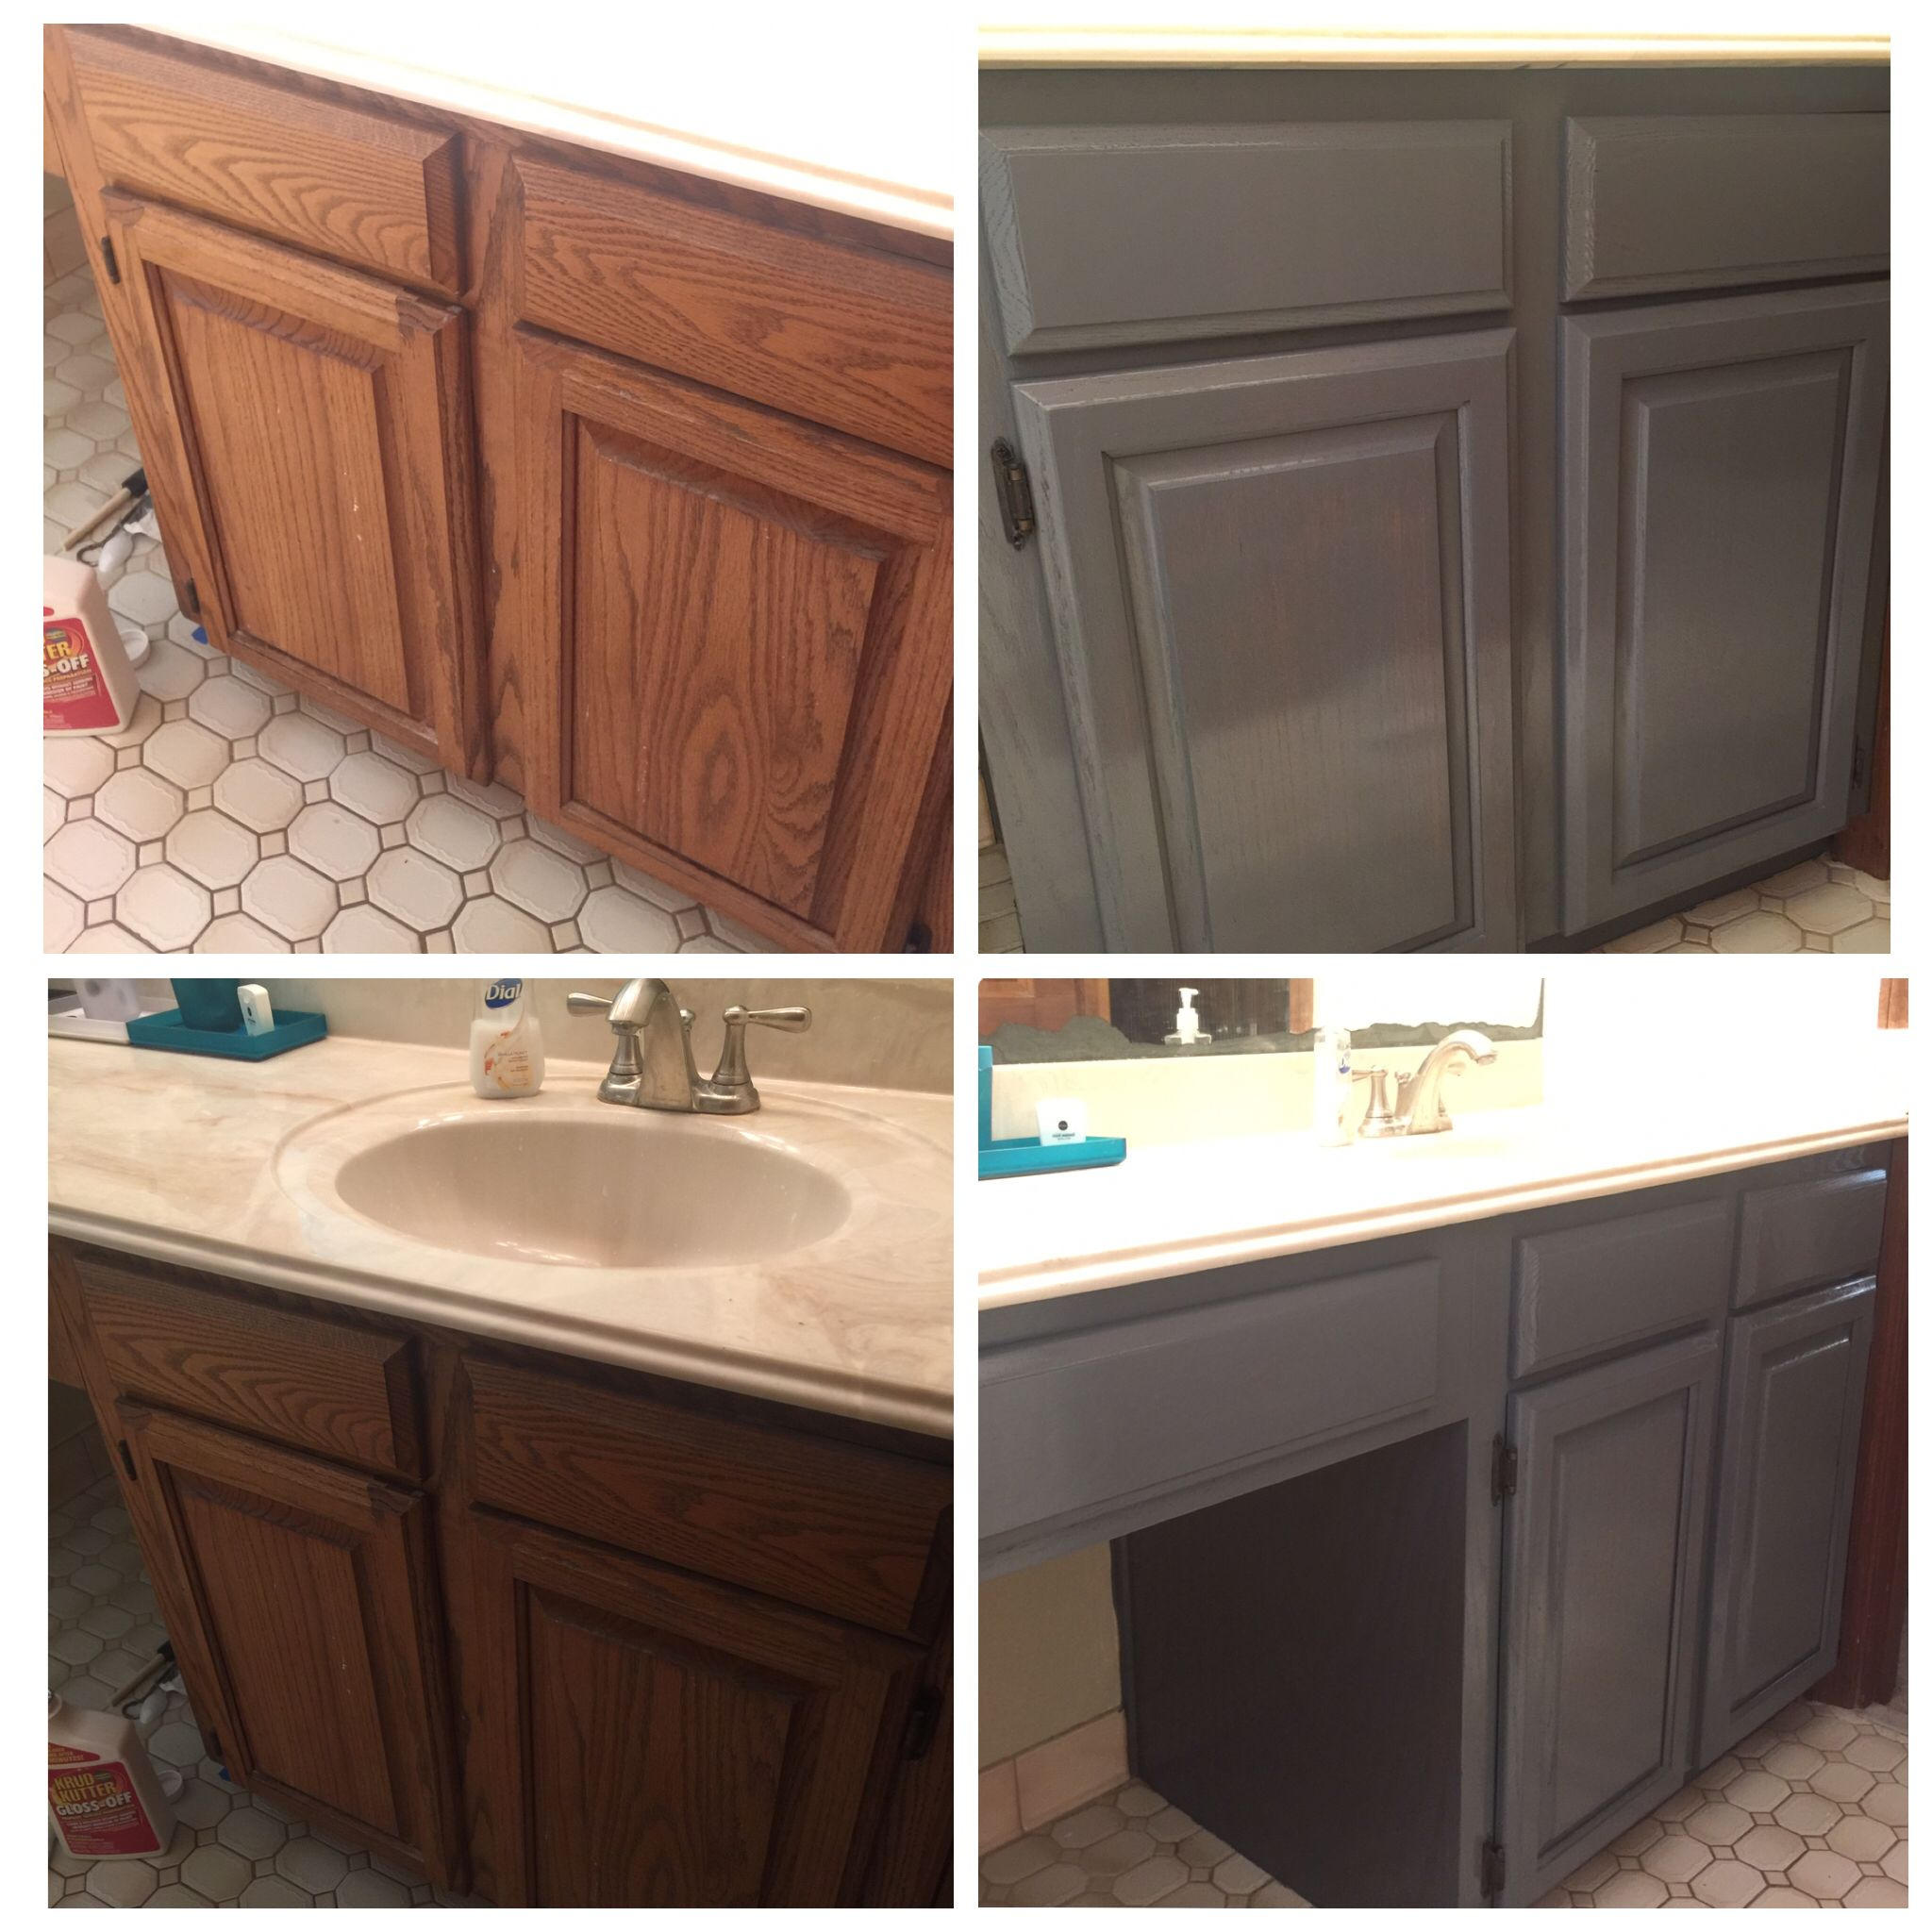 Tips Tricks For Painting Oak Cabinets: Before And After Using Varathane Weathered Grey Over 1987